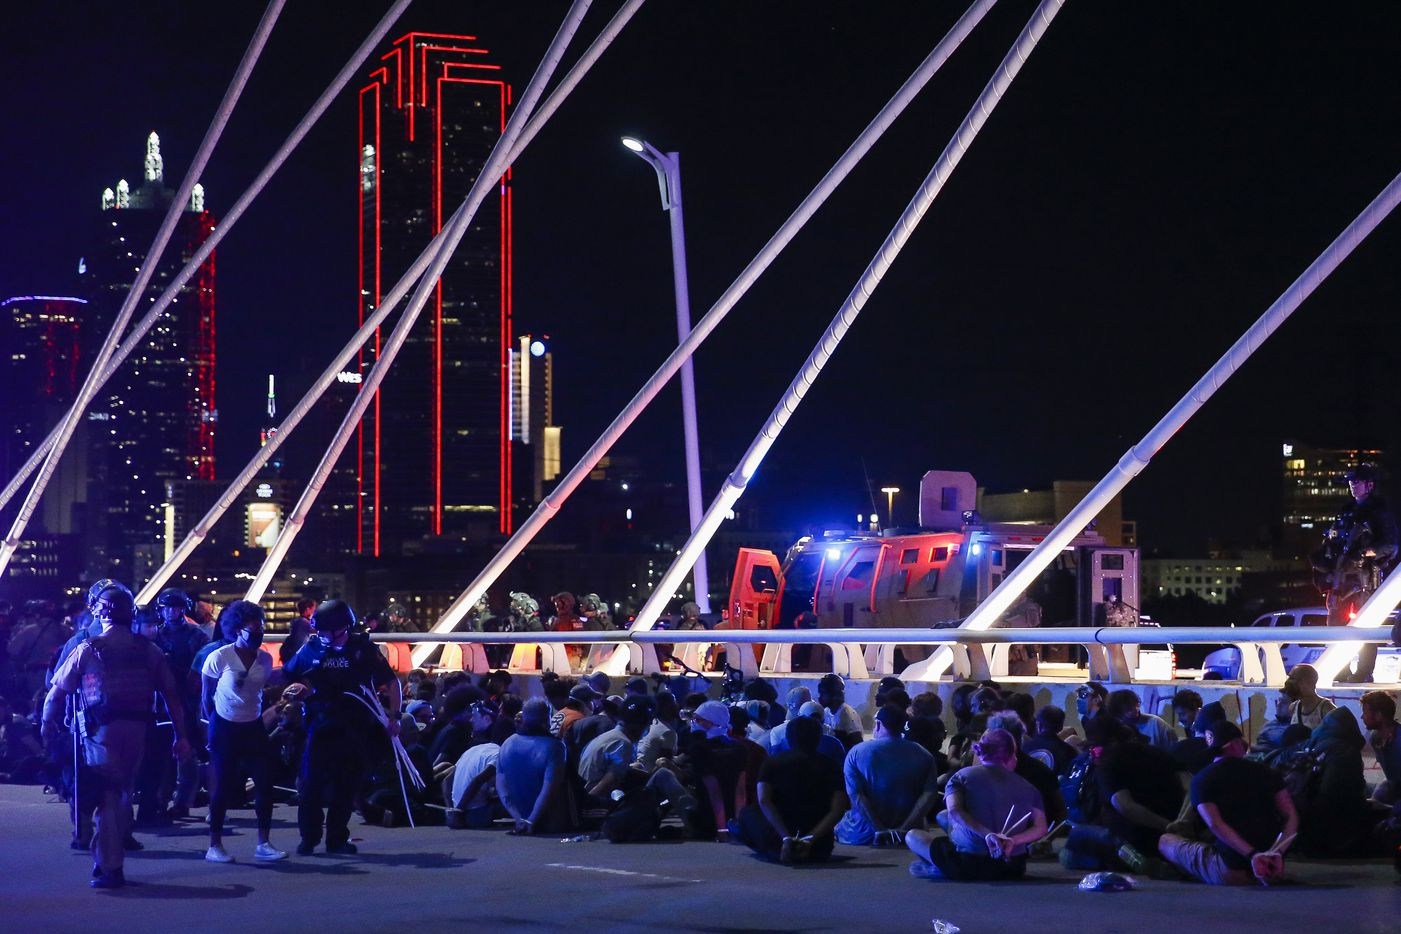 Police surround and detain hundreds of protesters who marched onto the Margaret Hunt Hill Bridge while demonstrating against police brutality on Monday, June 1, 2020, in Dallas. The protesters were transported to the Dallas County Jail where they were later released.